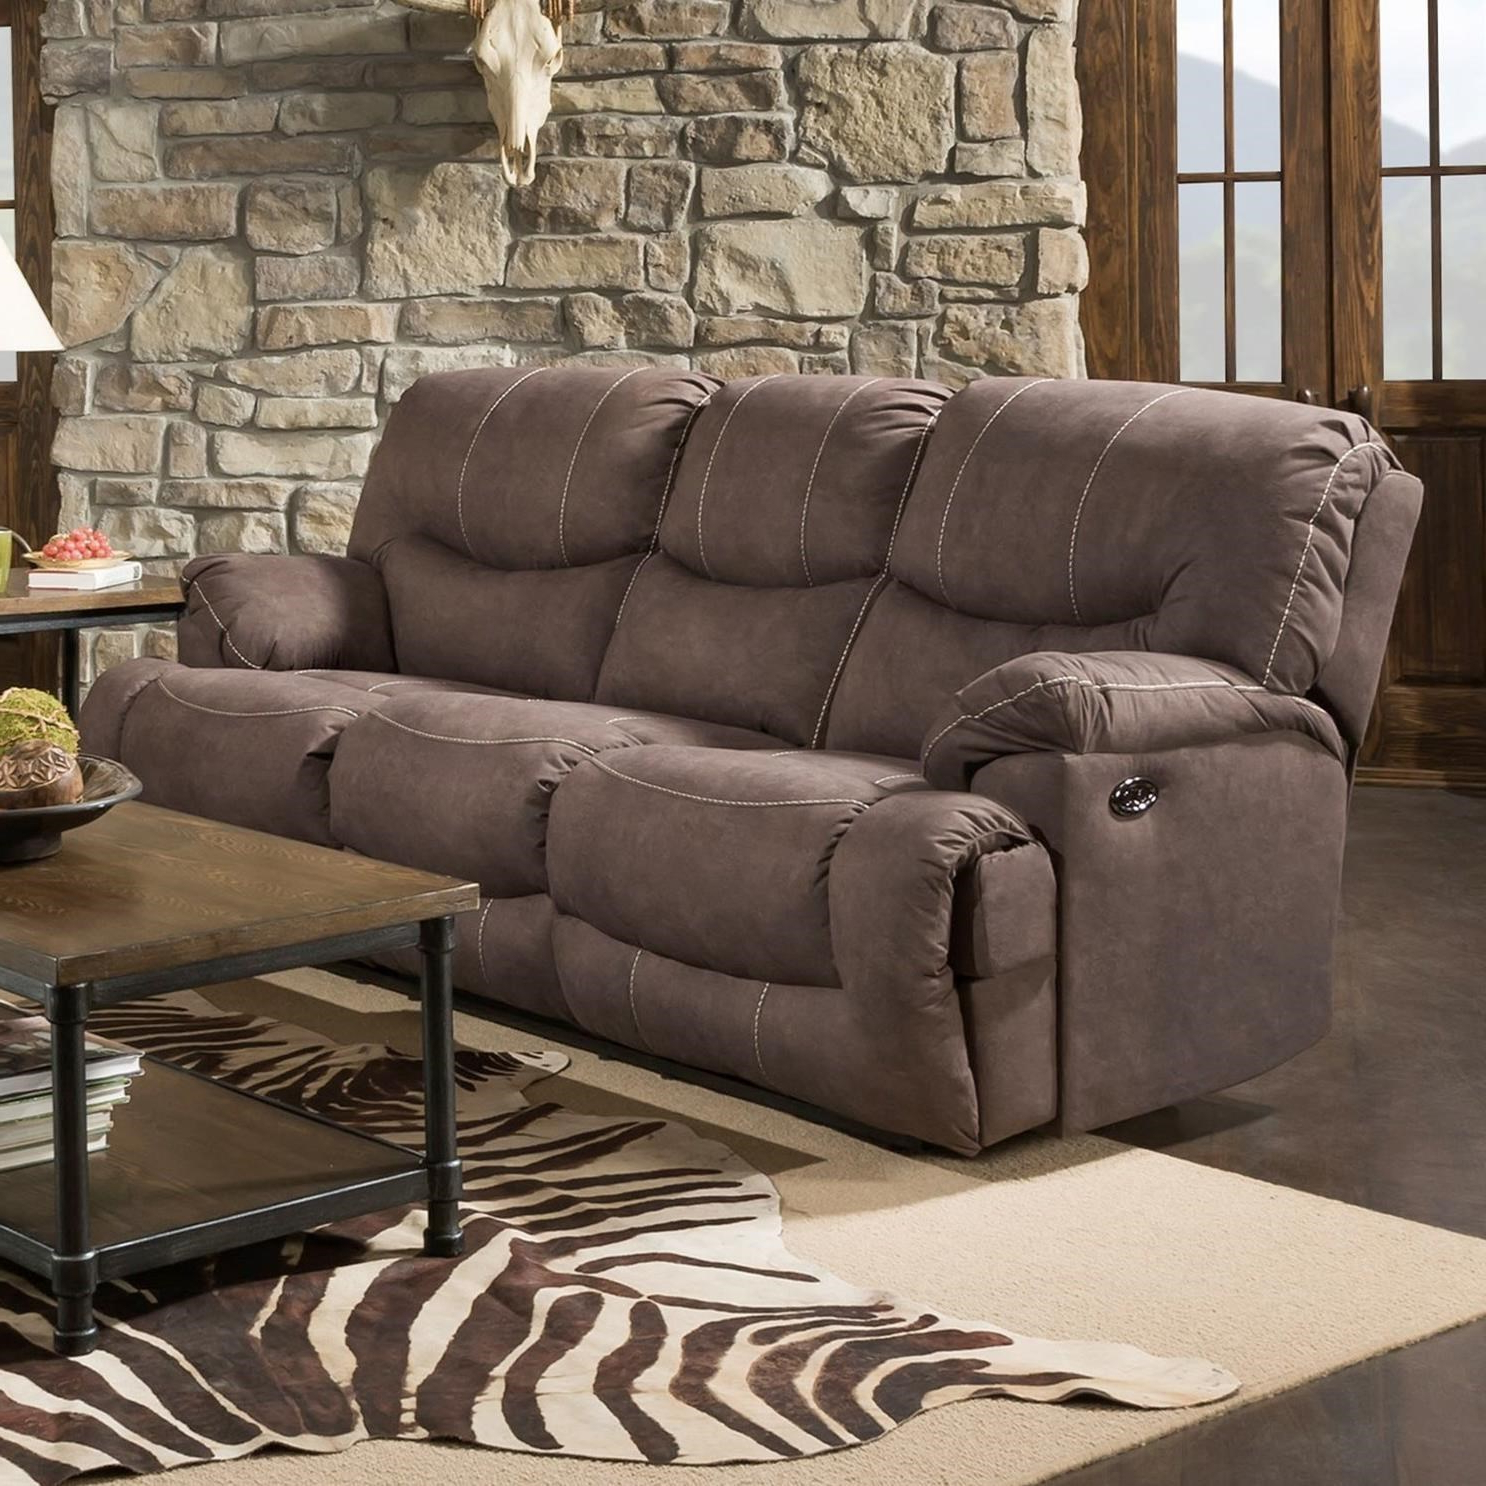 Dual Power Reclining Sofas With Regard To Best And Newest United Furniture Industries 50455Br Casual Double Power (View 2 of 7)